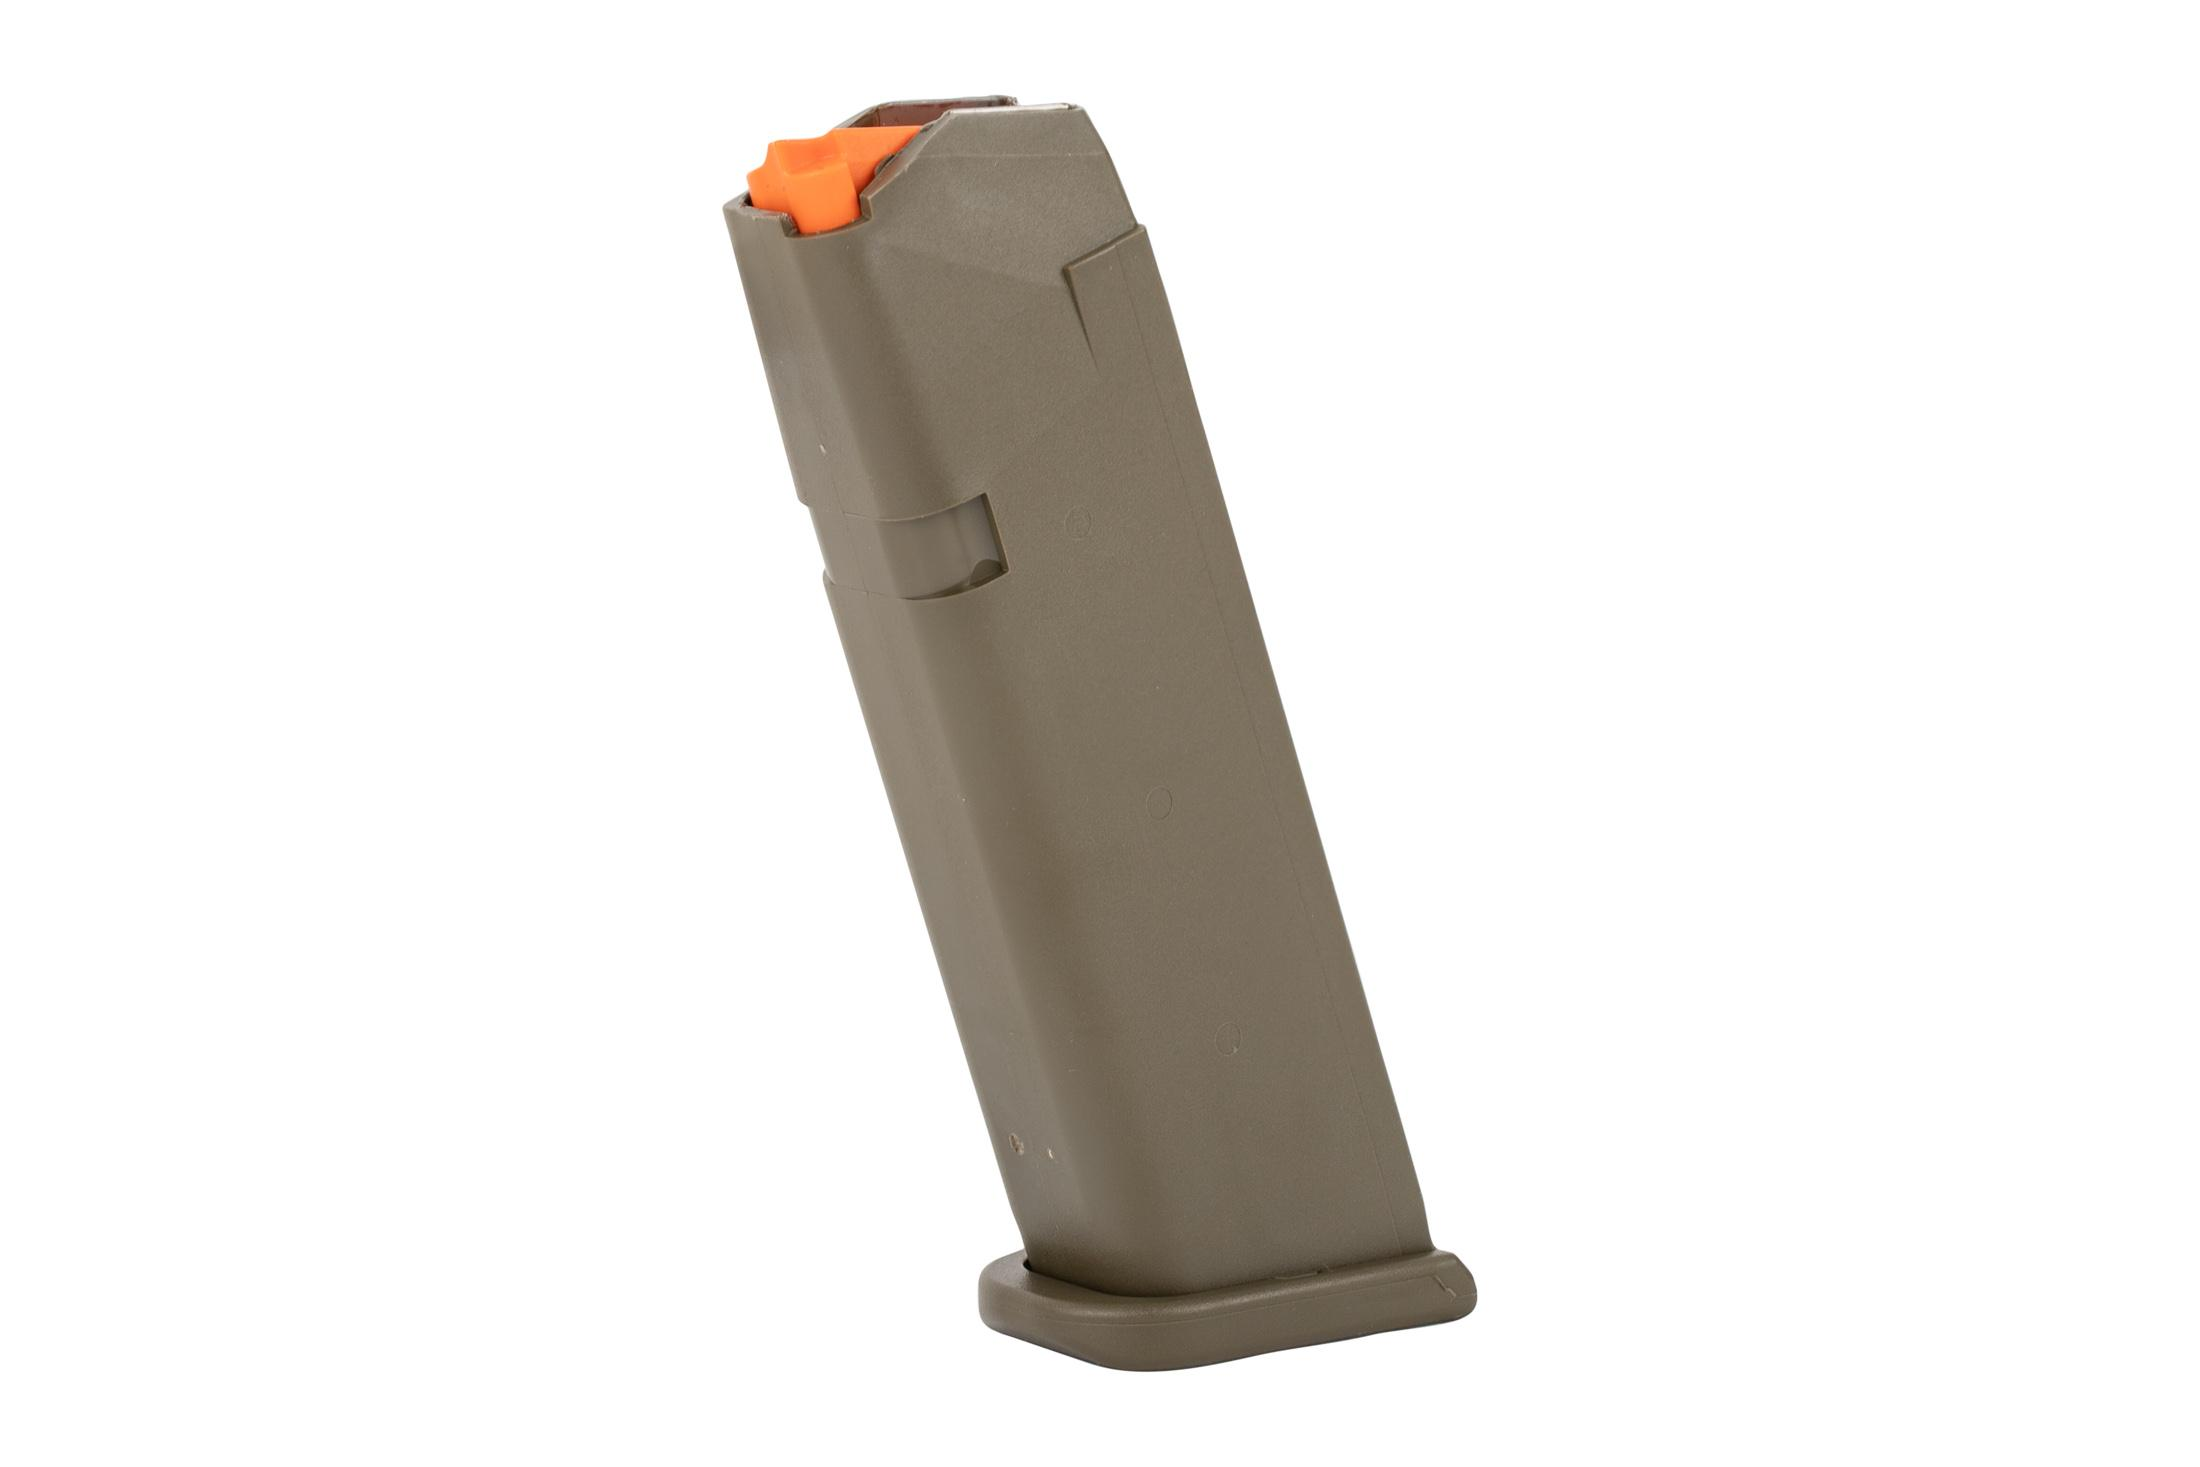 Glock OEM model 17 5th gen hi capacity mags have an olive drab finish and flared base plate for fast magazine changes